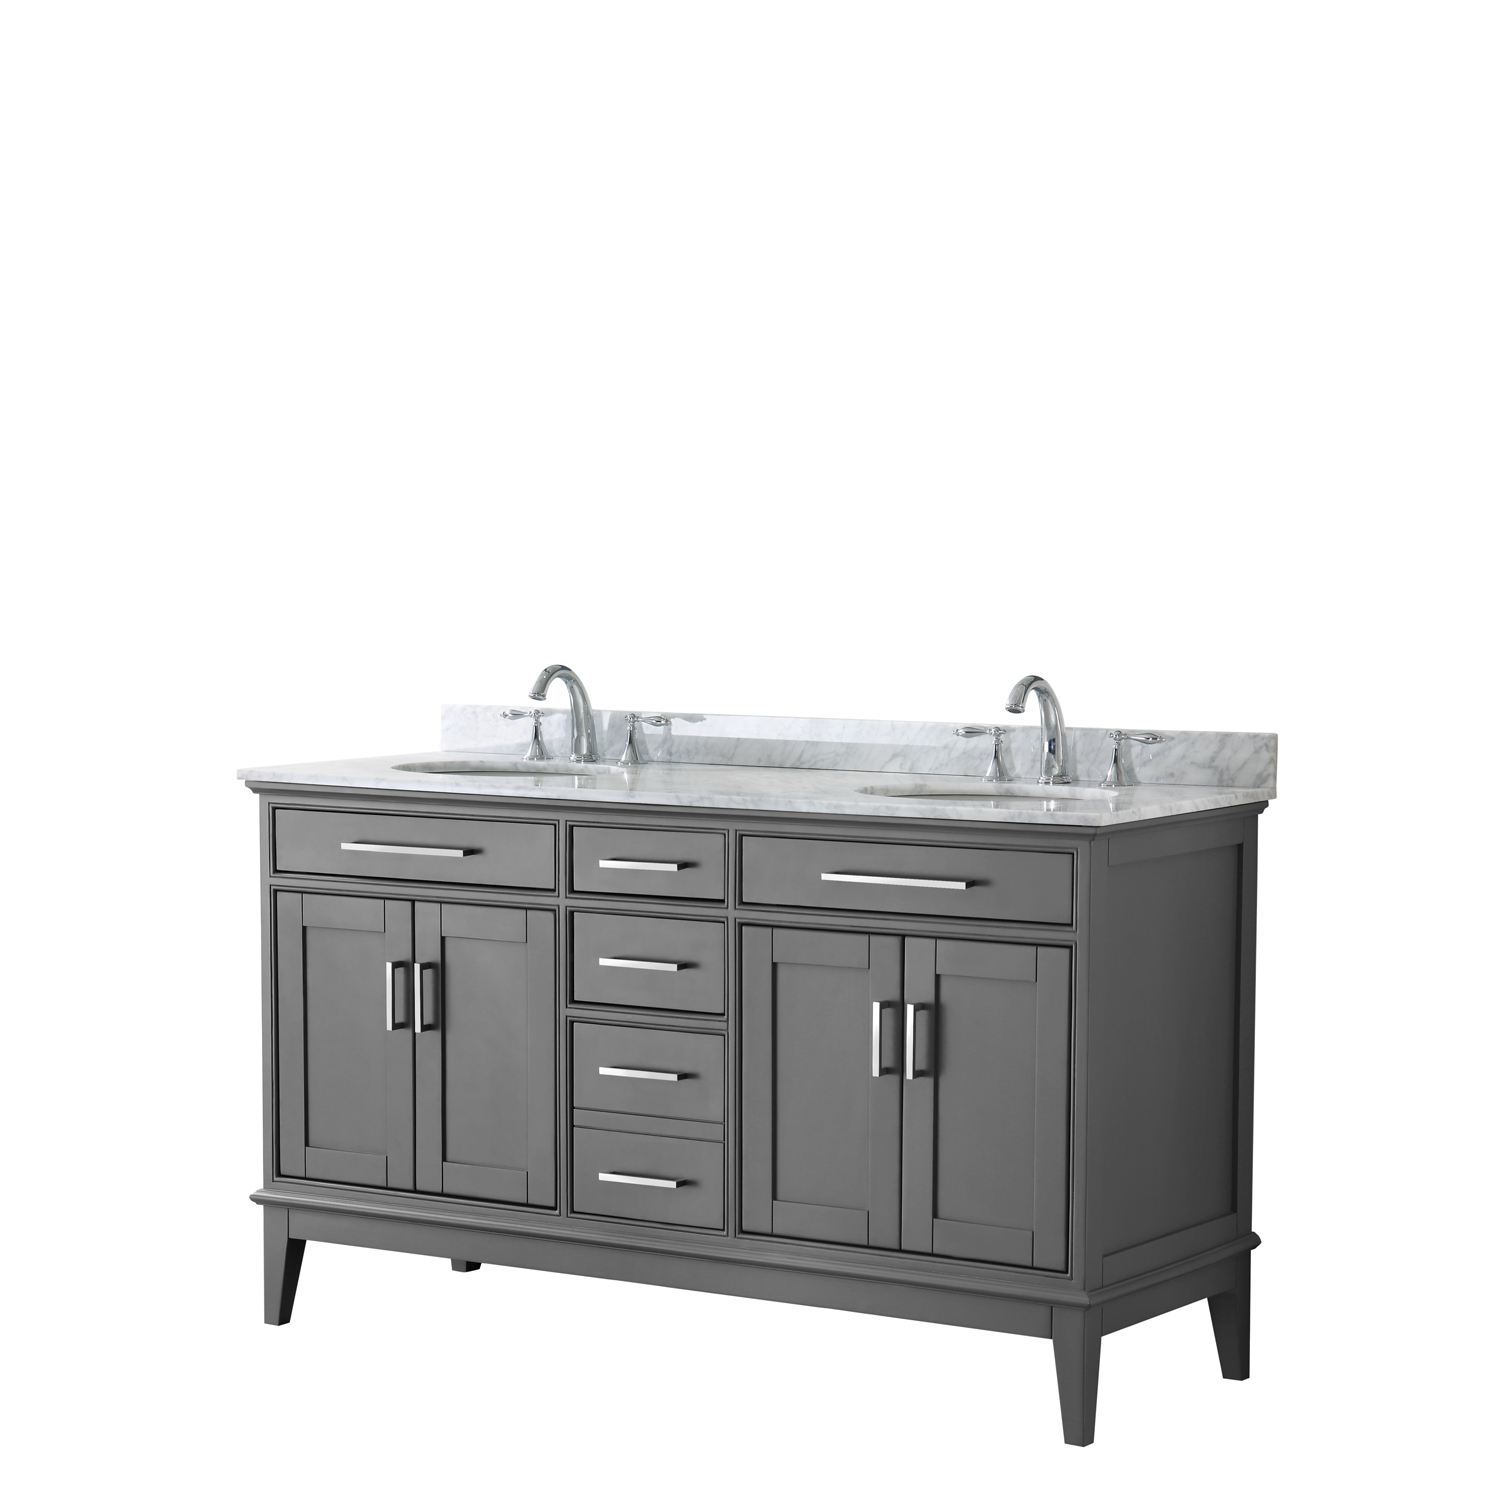 """Contemporary 60"""" Double Bathroom Vanity in Dark Gray, White Carrara Marble Countertop with Undermount Sinks, and Mirror Options"""